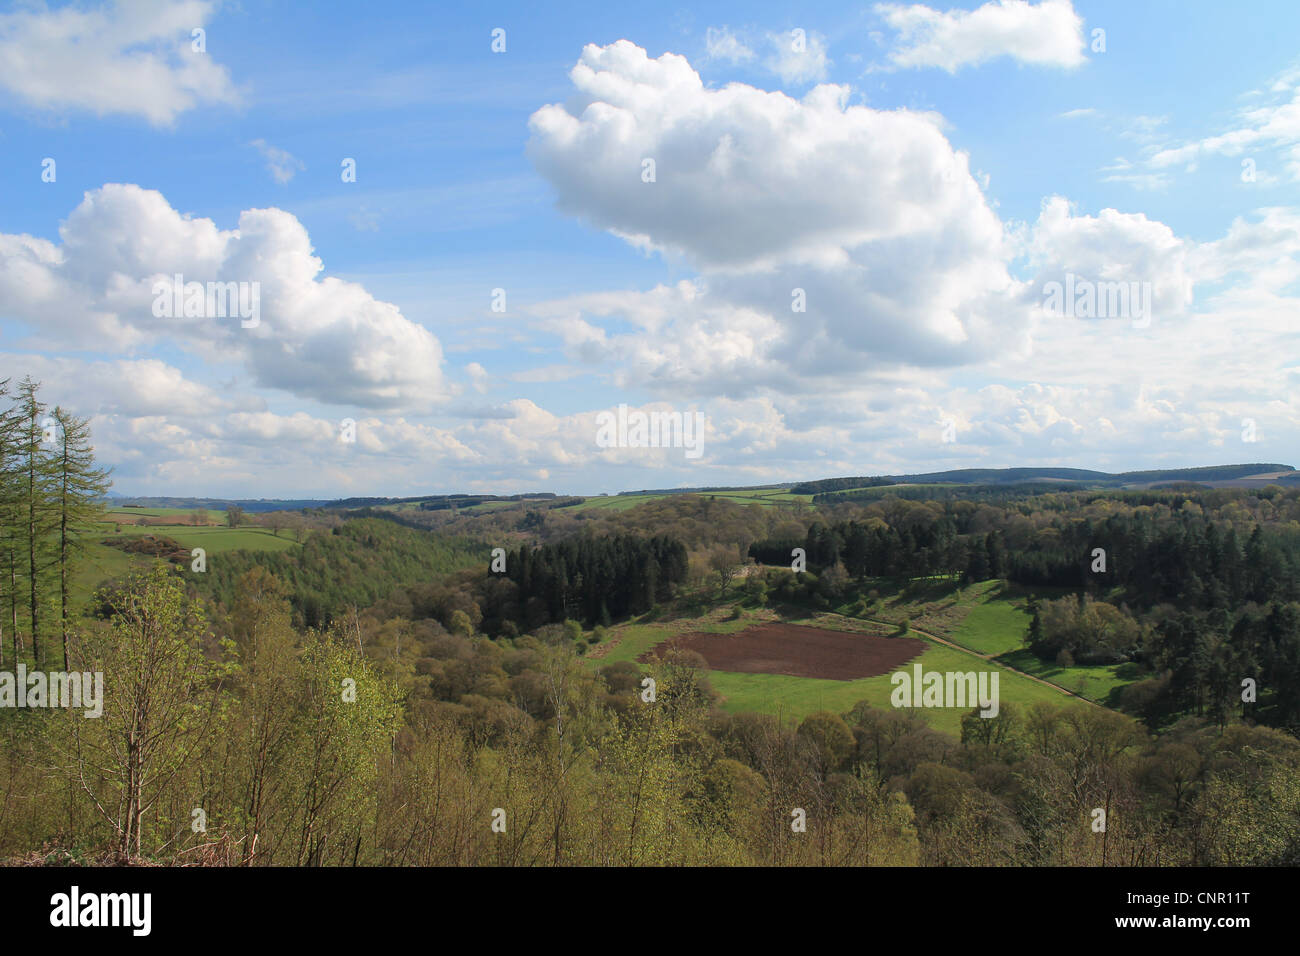 Looking south down the Eden Valley from Armathwaite, Cumbria, England. - Stock Image